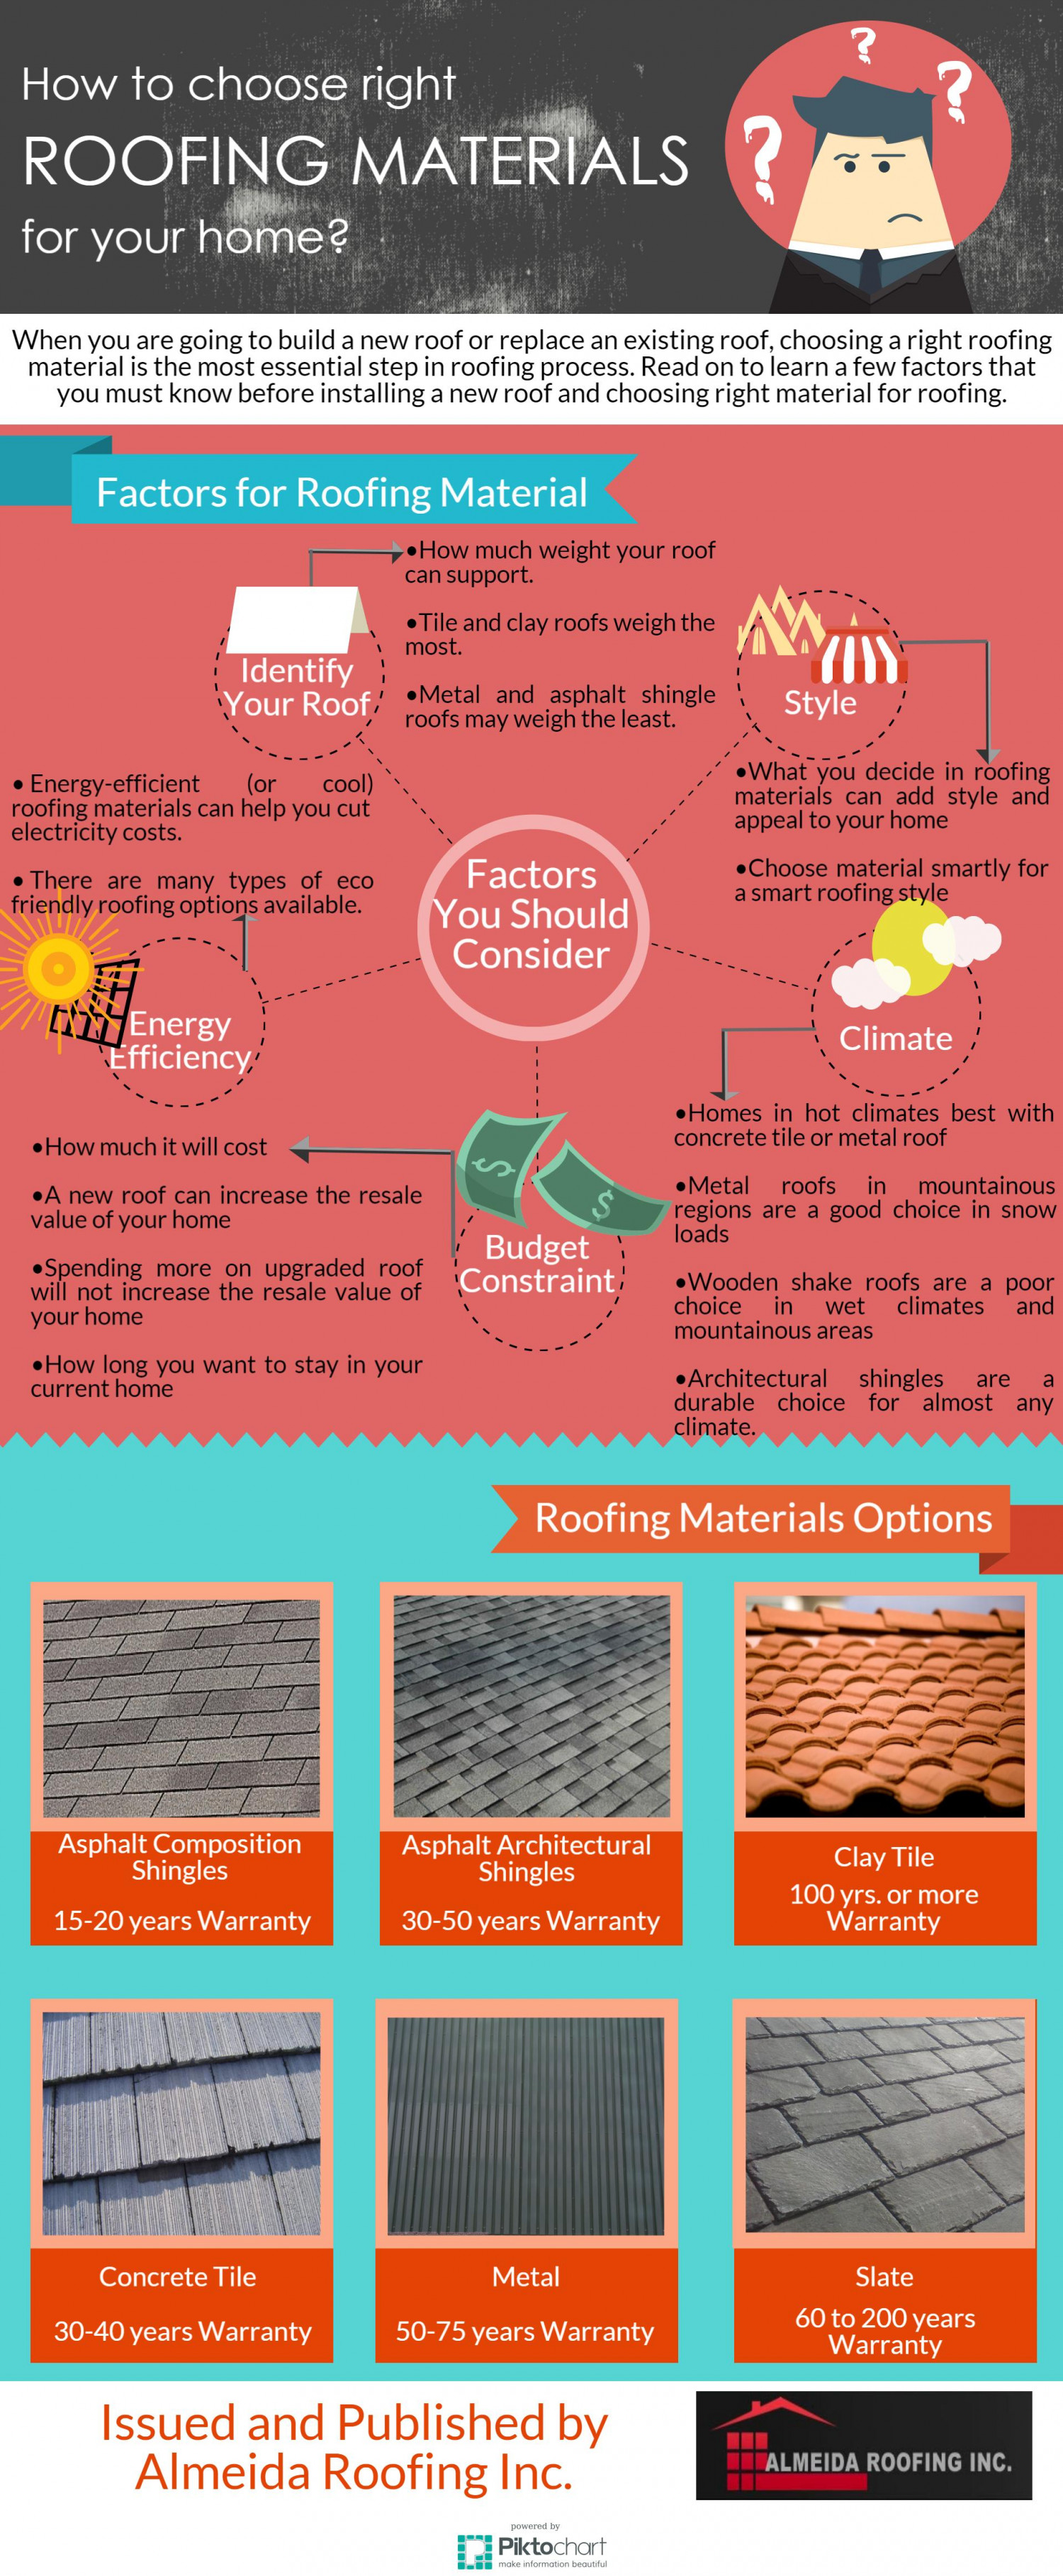 How To Choose Right Roofing Materials For Your Home